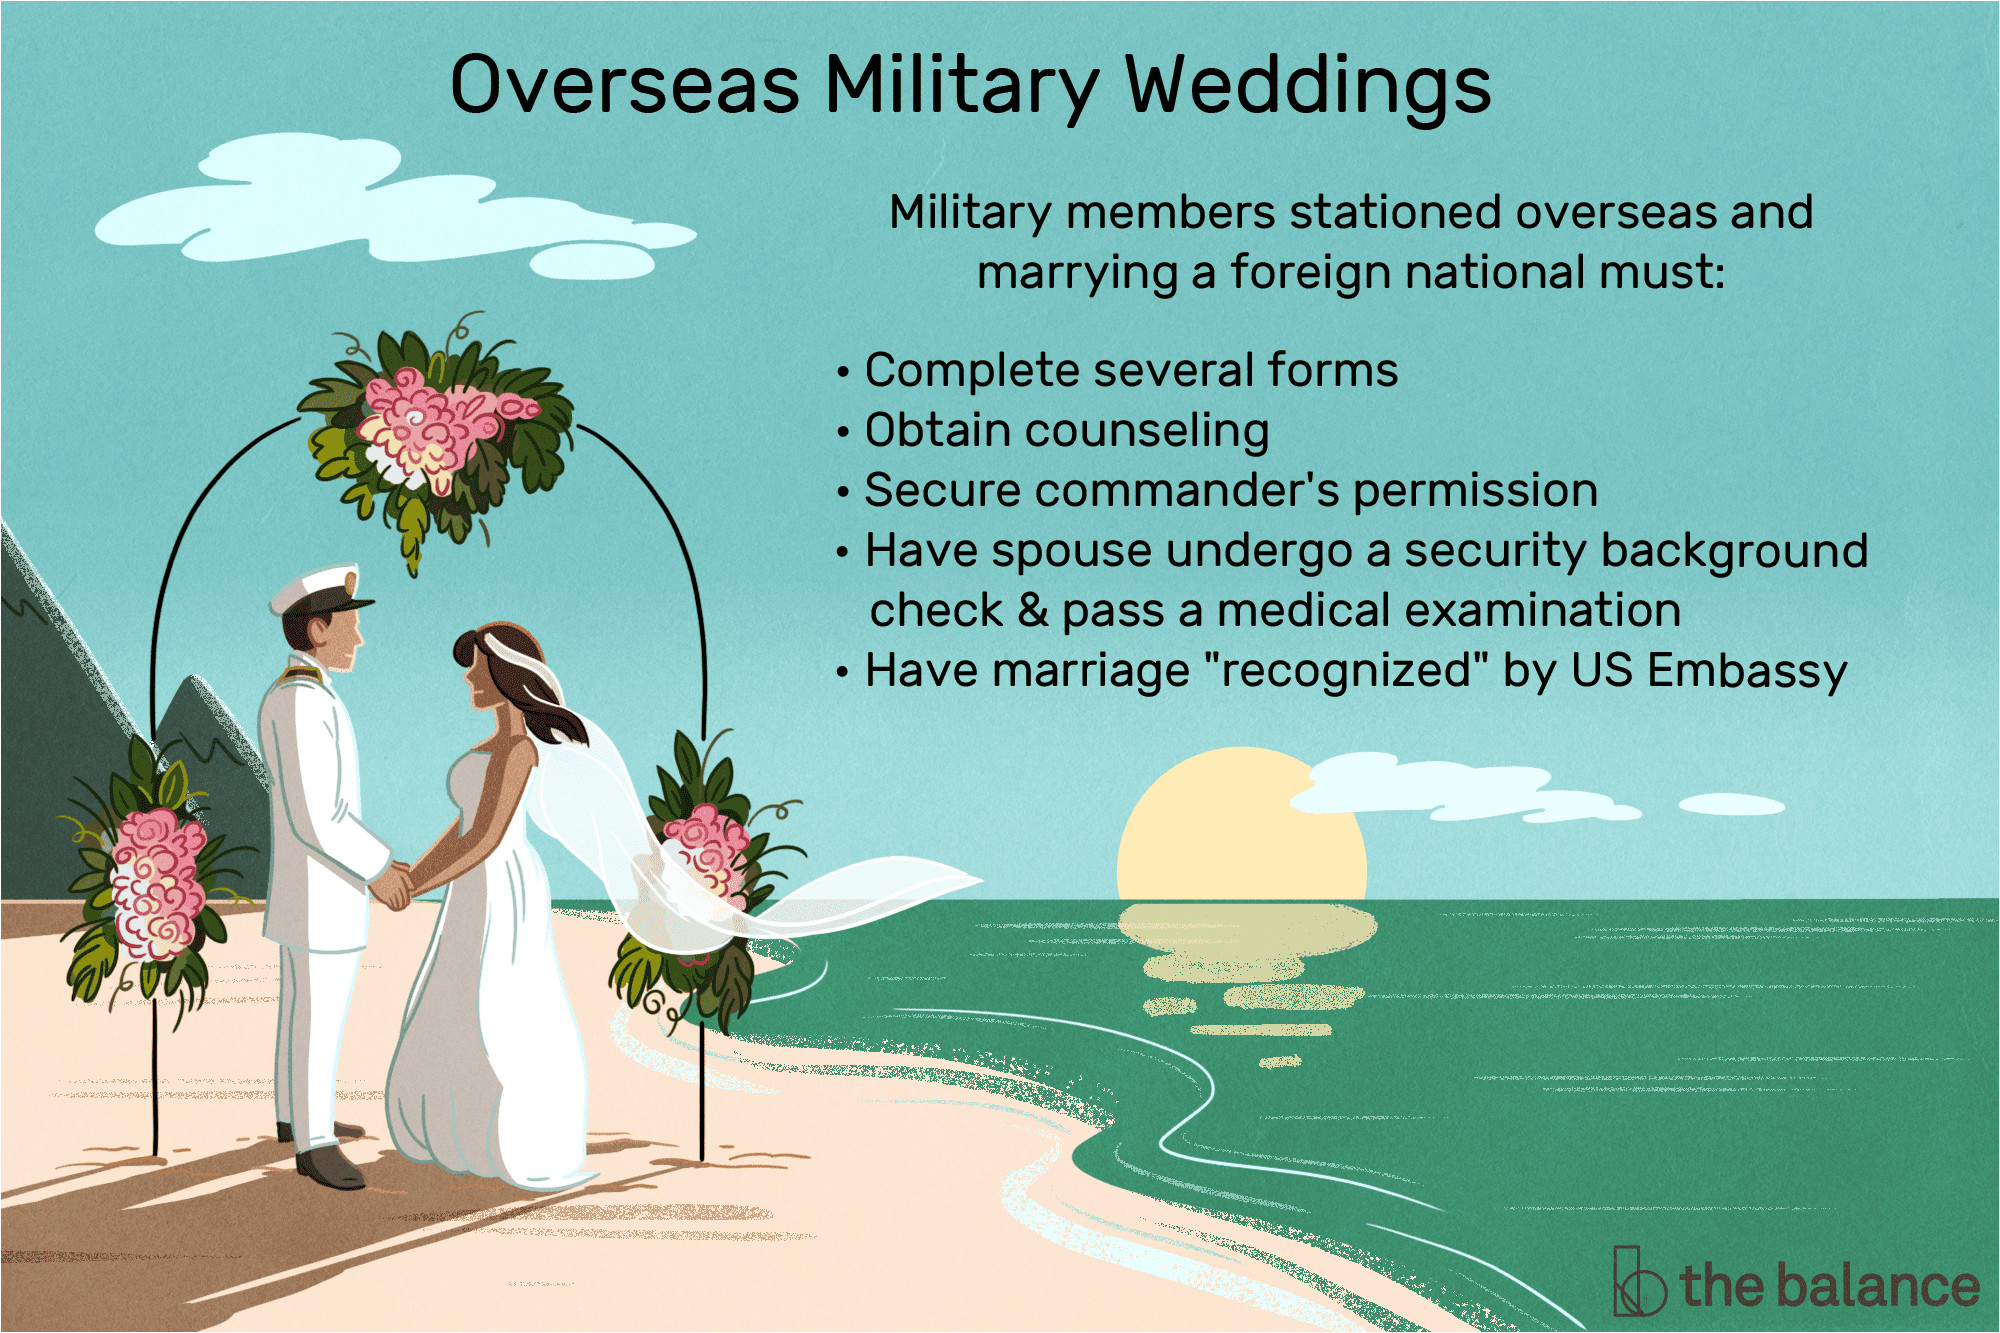 balance military weddings and honeymoons 3346199 v1 99cb29d8344b4fe2b178ca2bf41b586d png